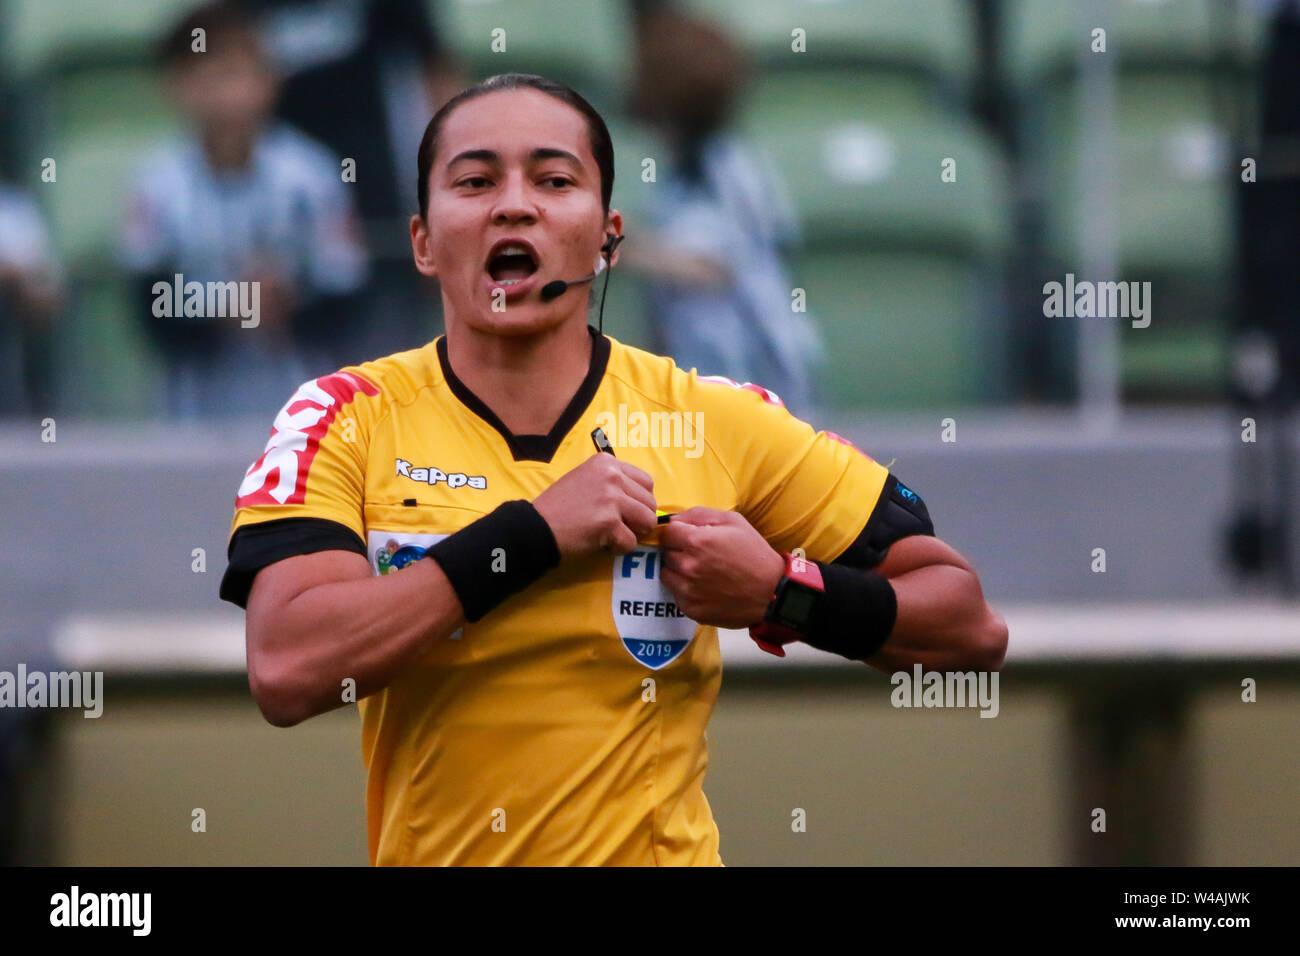 Belo Horizonte, Brazil. 21st July, 2019. MG vs Fortaleza, match valid for Brazilian Championship 2019, held at Arena Independência, Belo Horizonte, MG. Credit: Dudu Macedo/FotoArena/Alamy Live News - Stock Image